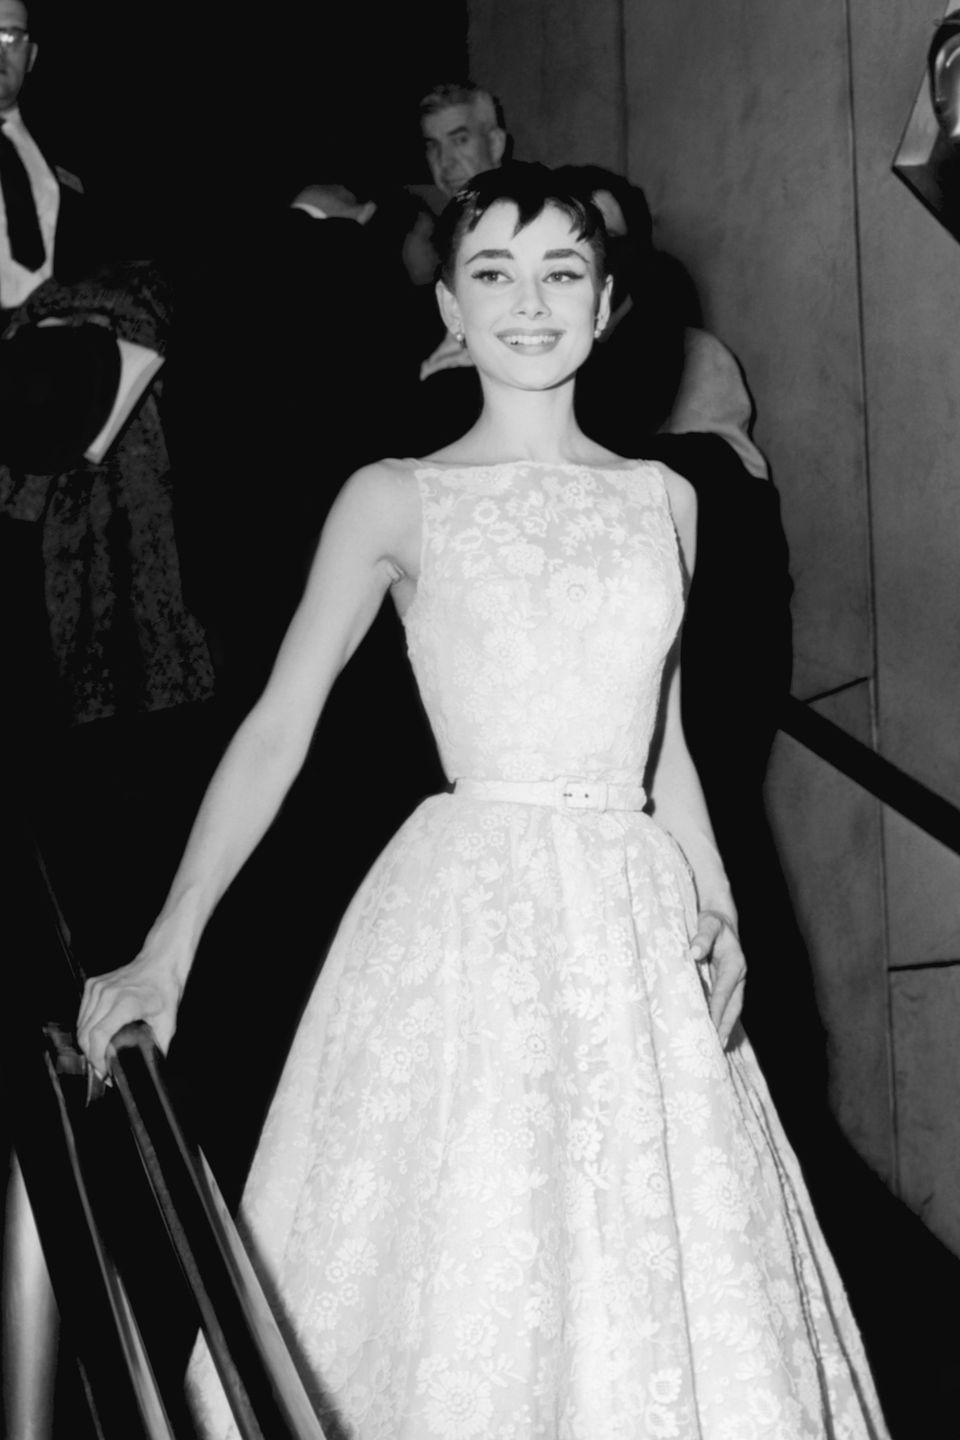 """<p>At the 1954 Oscars in New York City, Hepburn wore this tea-length Givenchy number. It was sold for a little under <a href=""""https://financesonline.com/10-most-expensive-dresses-worn-by-celebrities-at-the-academy-awards/"""" rel=""""nofollow noopener"""" target=""""_blank"""" data-ylk=""""slk:$131,300 in 2011"""" class=""""link rapid-noclick-resp"""">$131,300 in 2011</a>.</p>"""